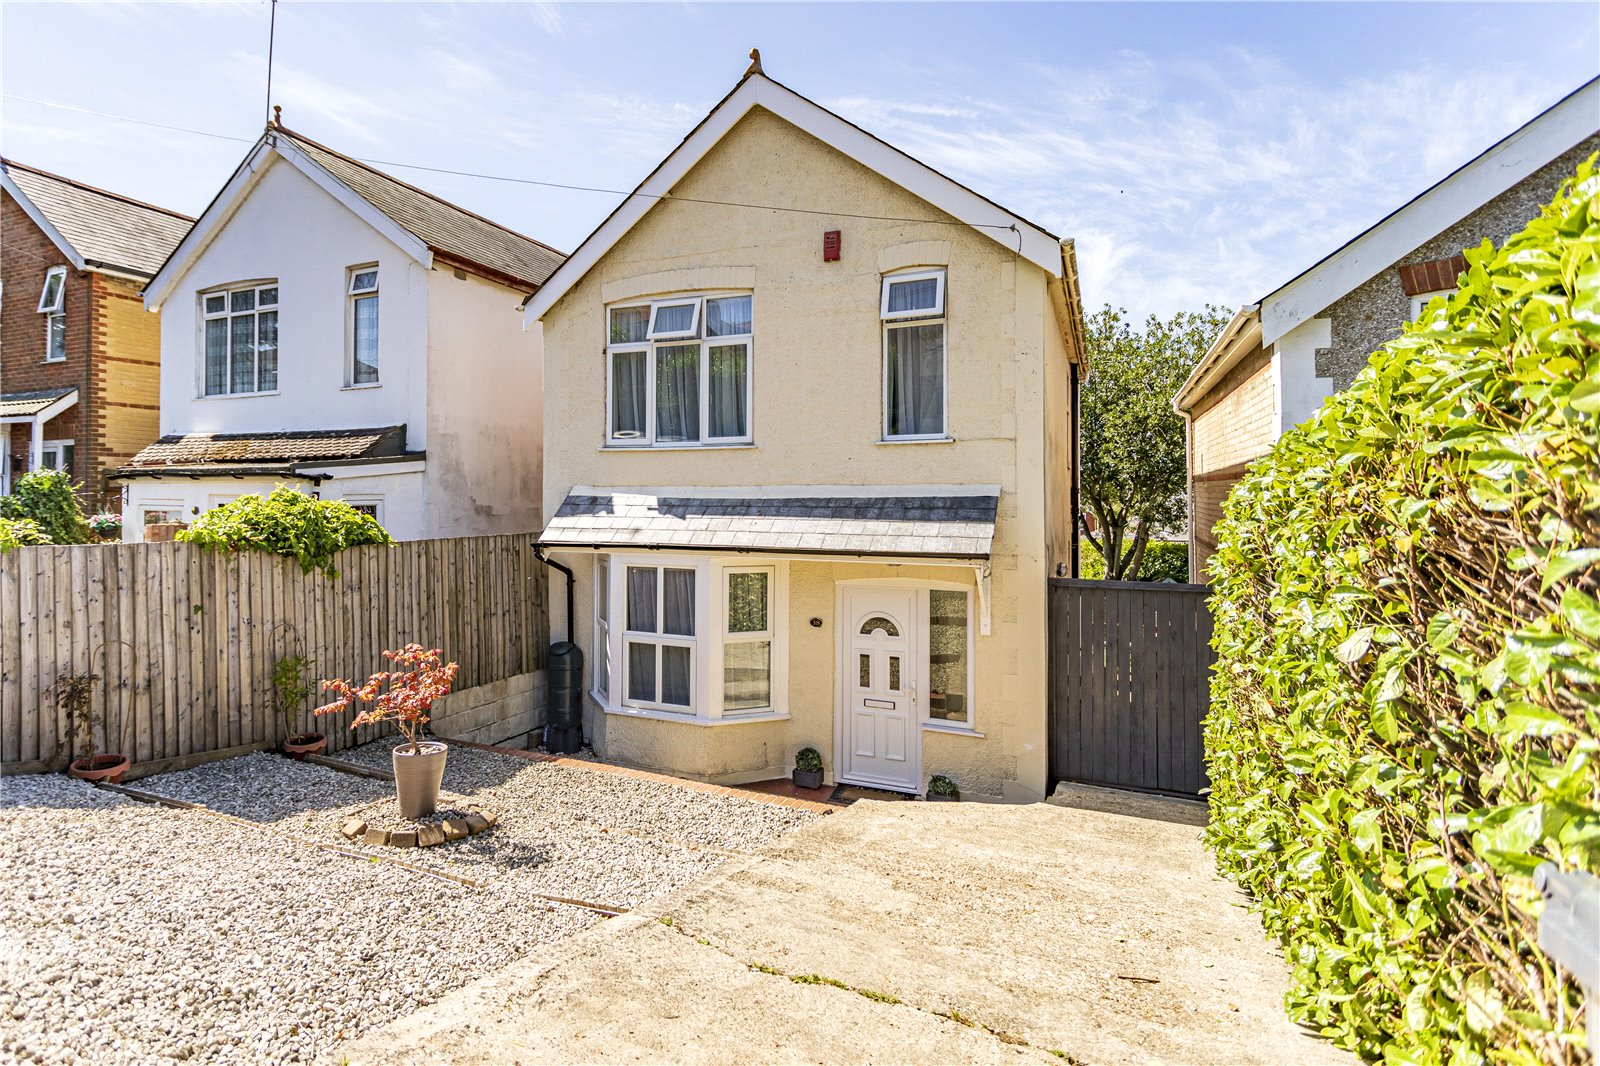 3 bed house for sale in Lincoln Road, Parkstone, BH12